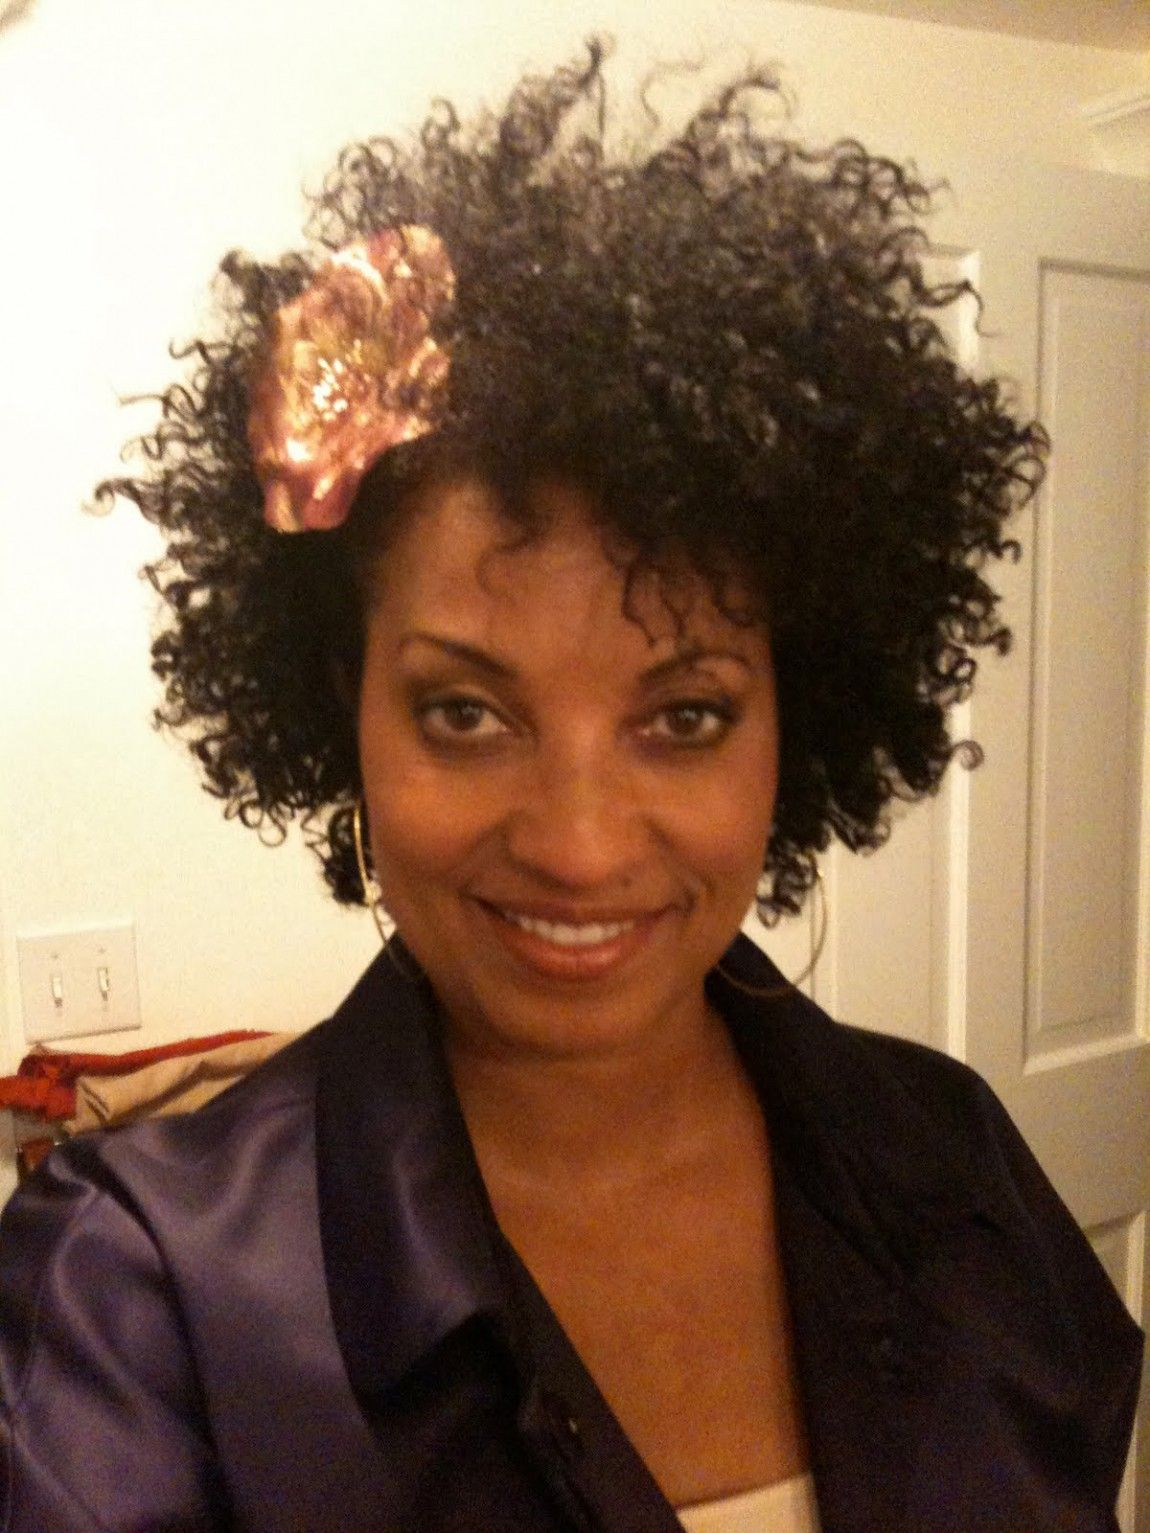 Short Natural African Hair Styles e1367678042692 Natural Hairstyles for African American Women 2013